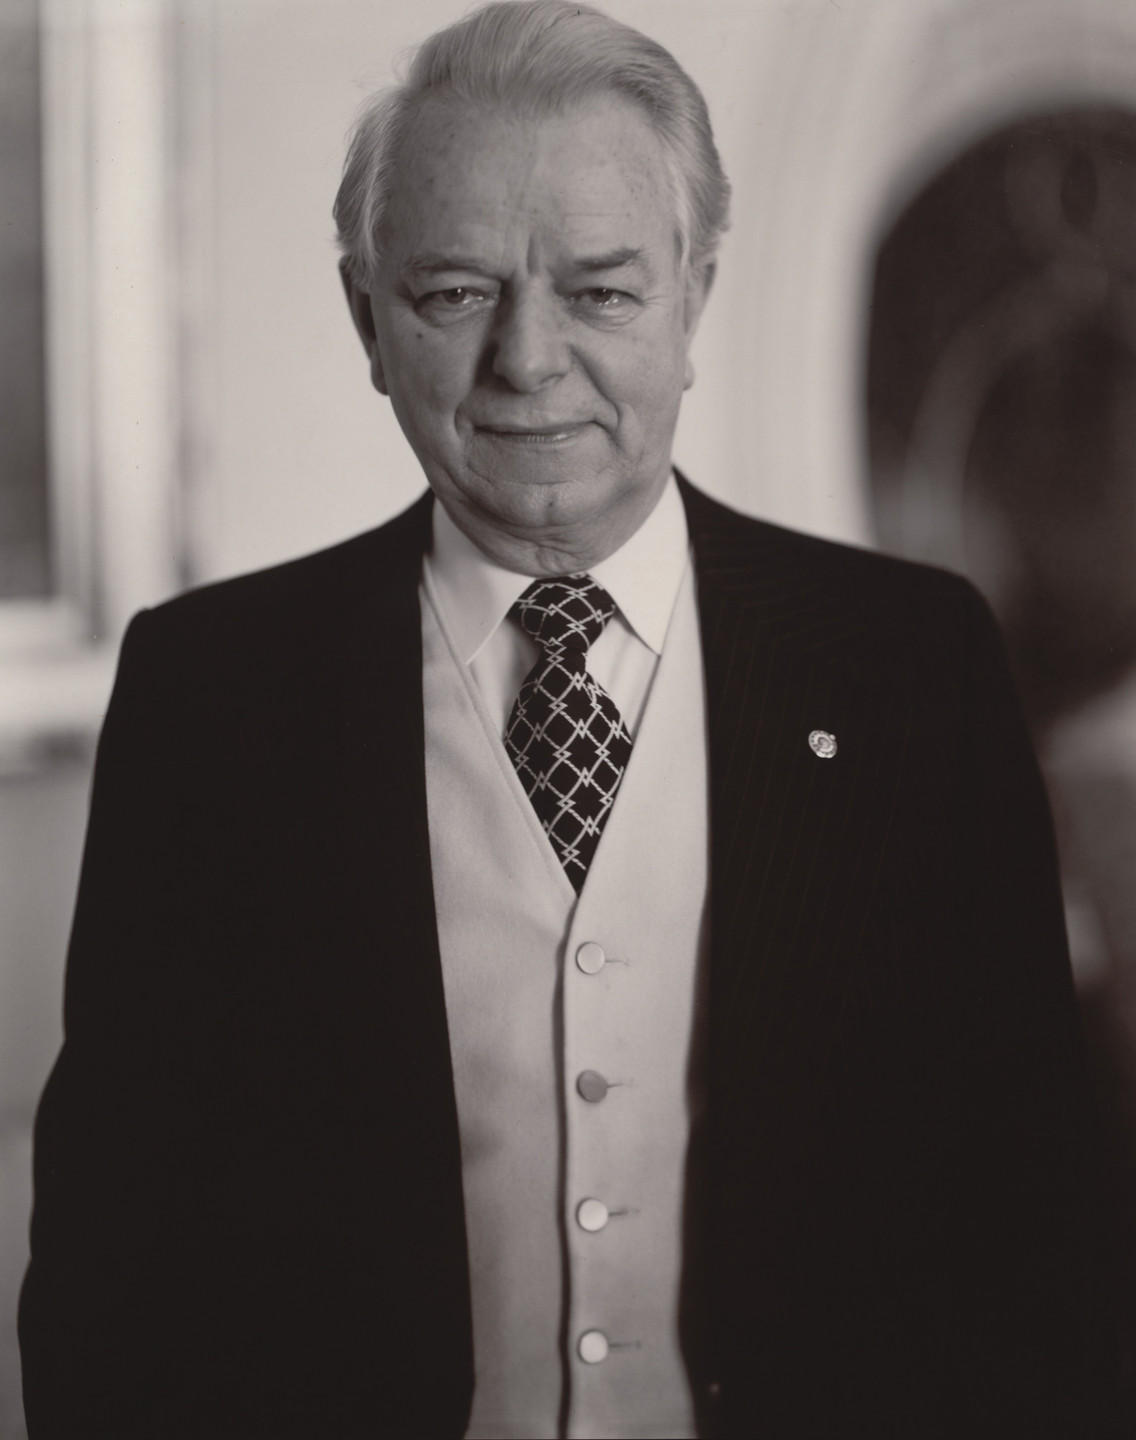 Judith Joy Ross. Senator Robert C. Byrd, Democrat, West Virginia (Majority Leader). 1987